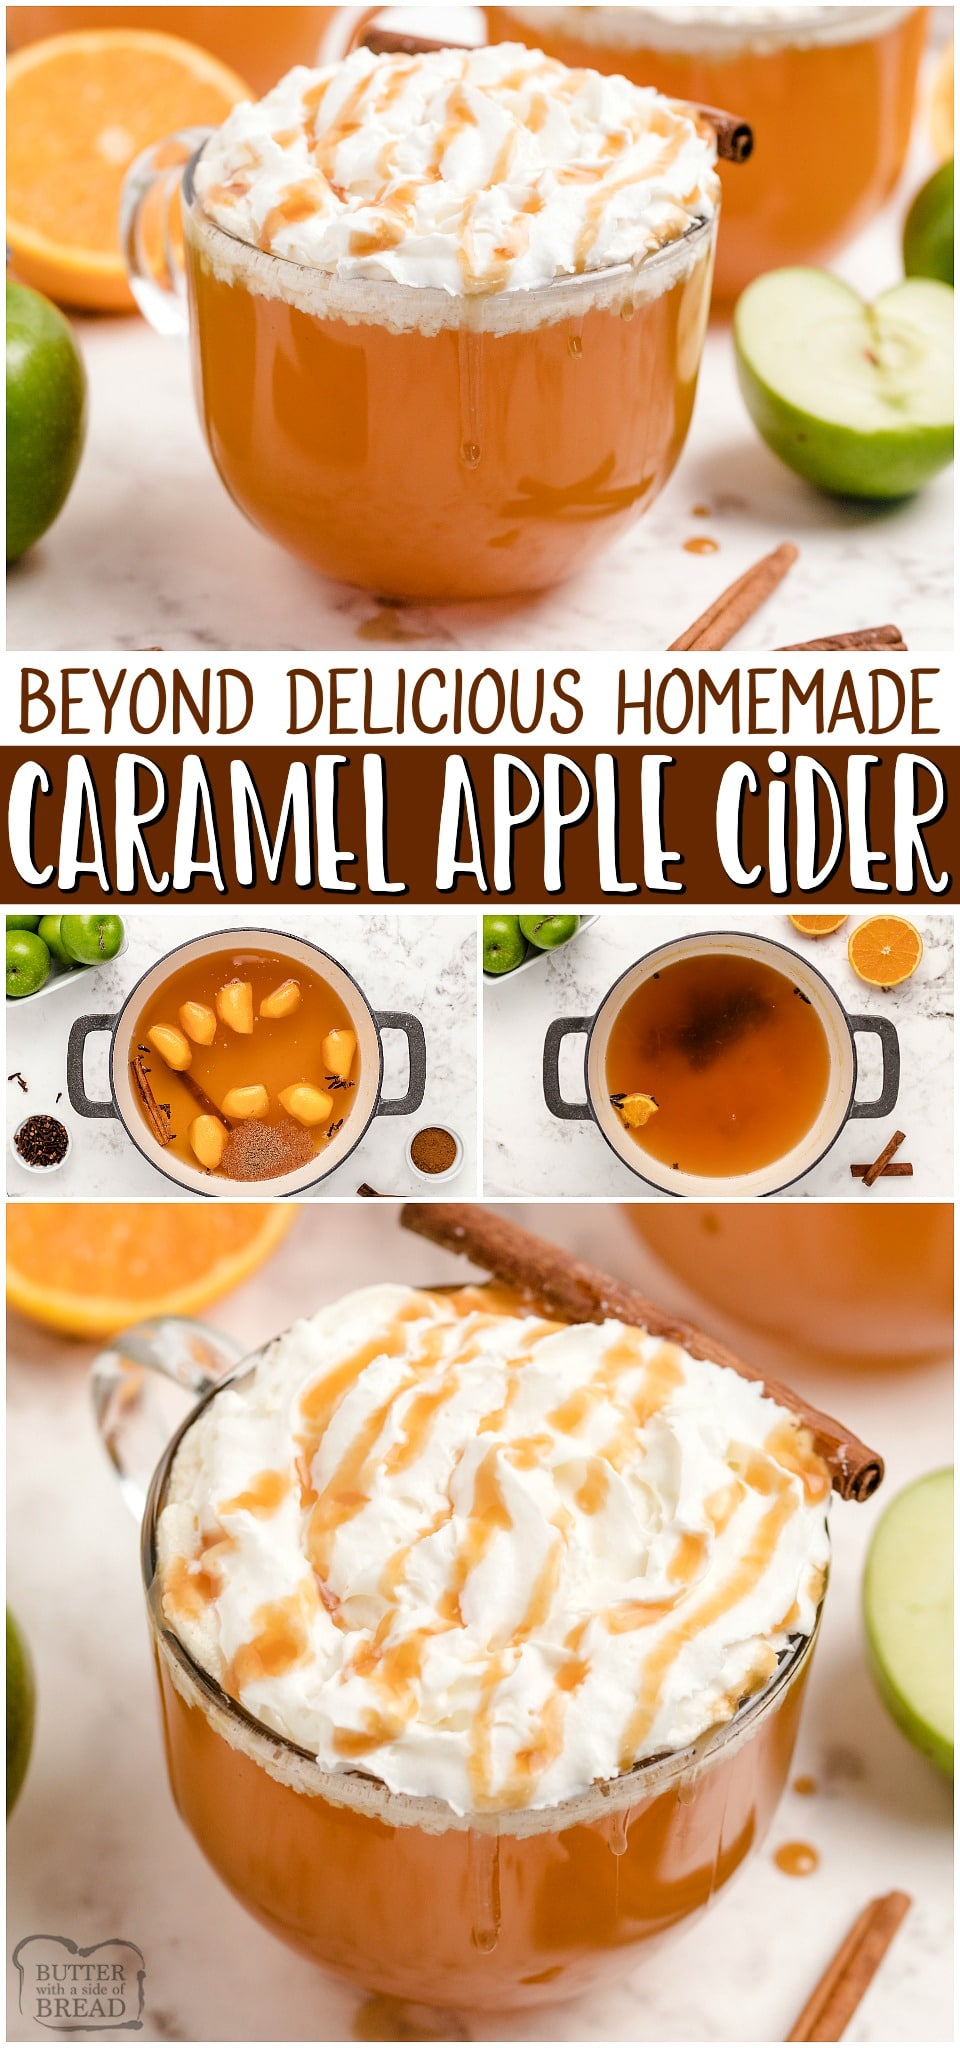 Caramel Apple Cider recipemade with apple juice, cinnamon, cloves & nutmeg! Spiced Apple Cider topped with fresh cream and a drizzle of caramel for a hot & delicious Fall treat!#apples #applecider #beverage #hotdrink #Fall #cider #caramel #easyrecipe from BUTTER WITH A SIDE OF BREAD